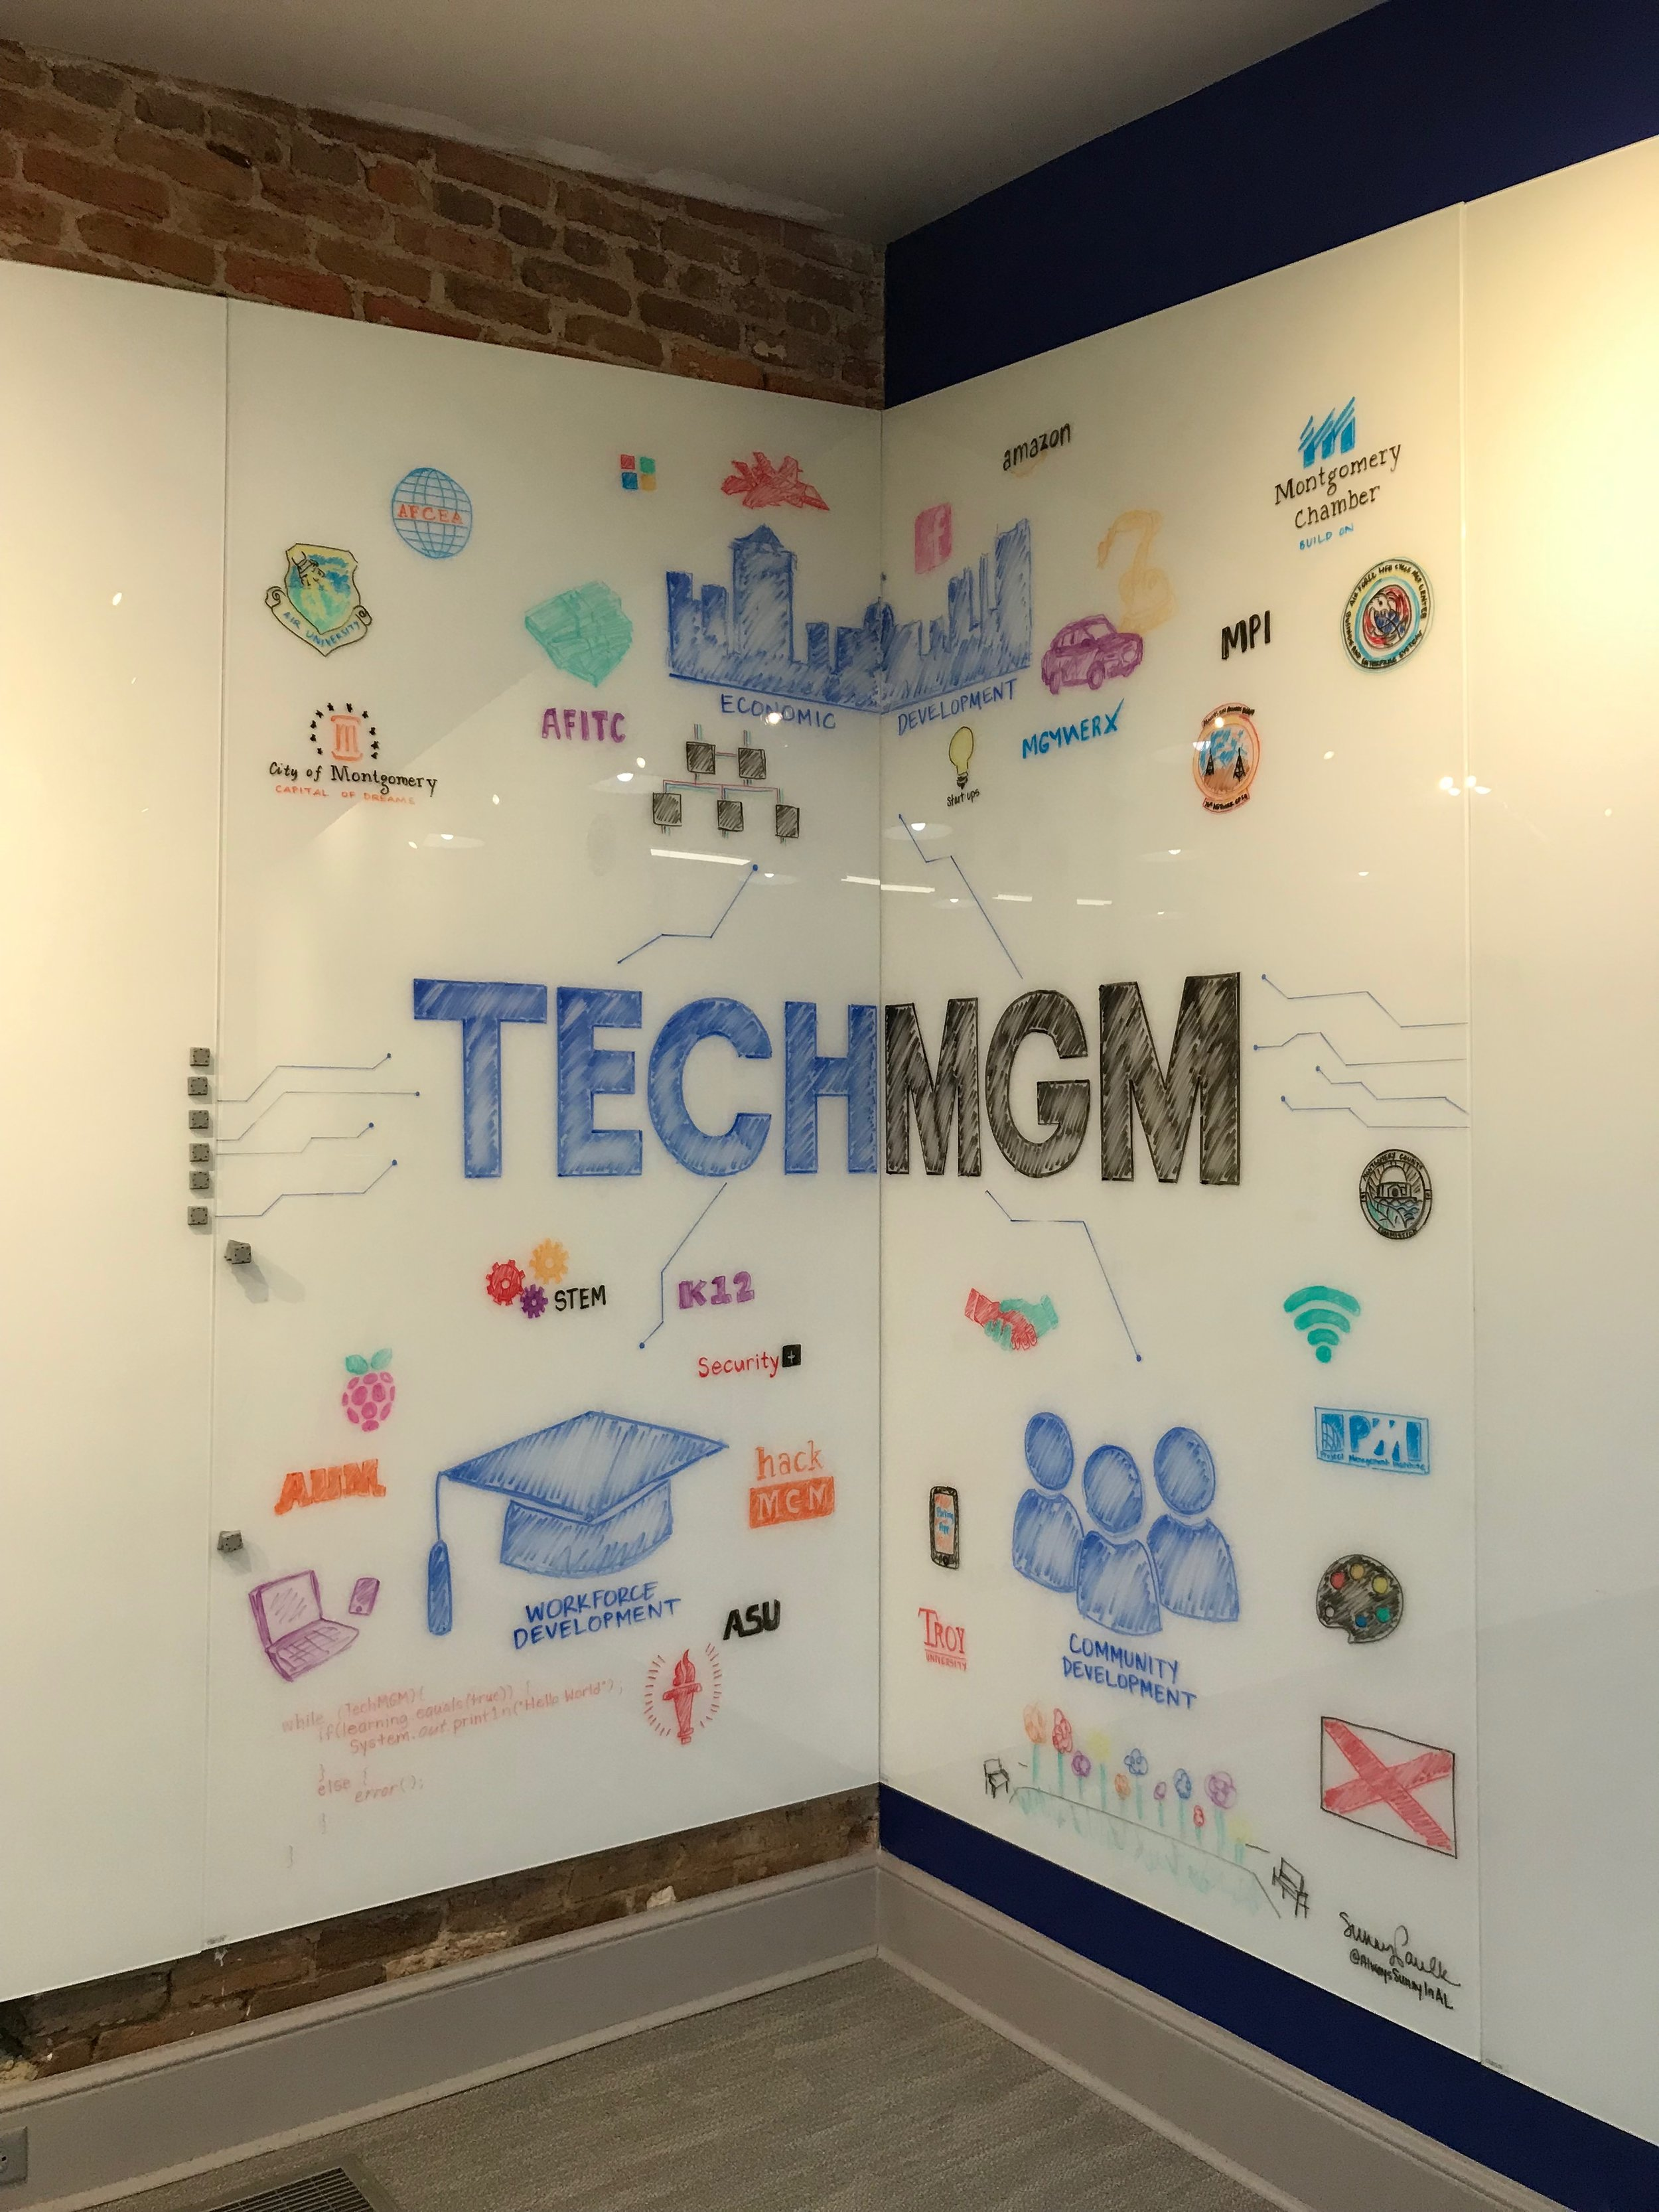 For TECHMGM, Montgomery Alabama Chamber of Commerce. 2018. 8' x 8' dry erase marker on glass.